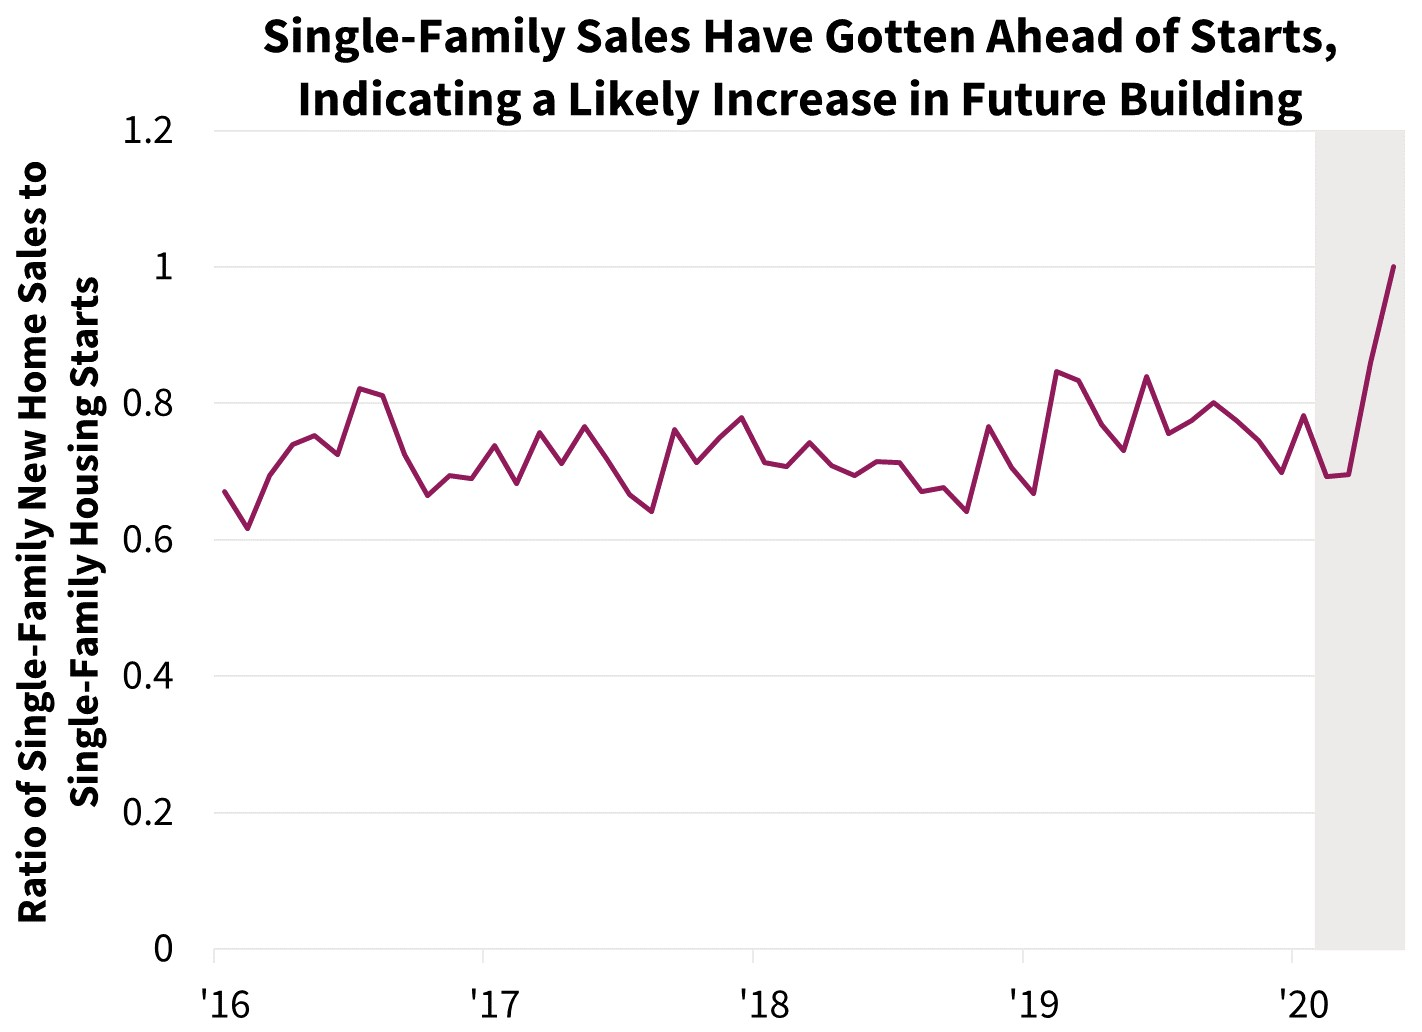 Single-Family Sales have Gotten Ahead of Starts, Indicating a Likely Increase in Future Building